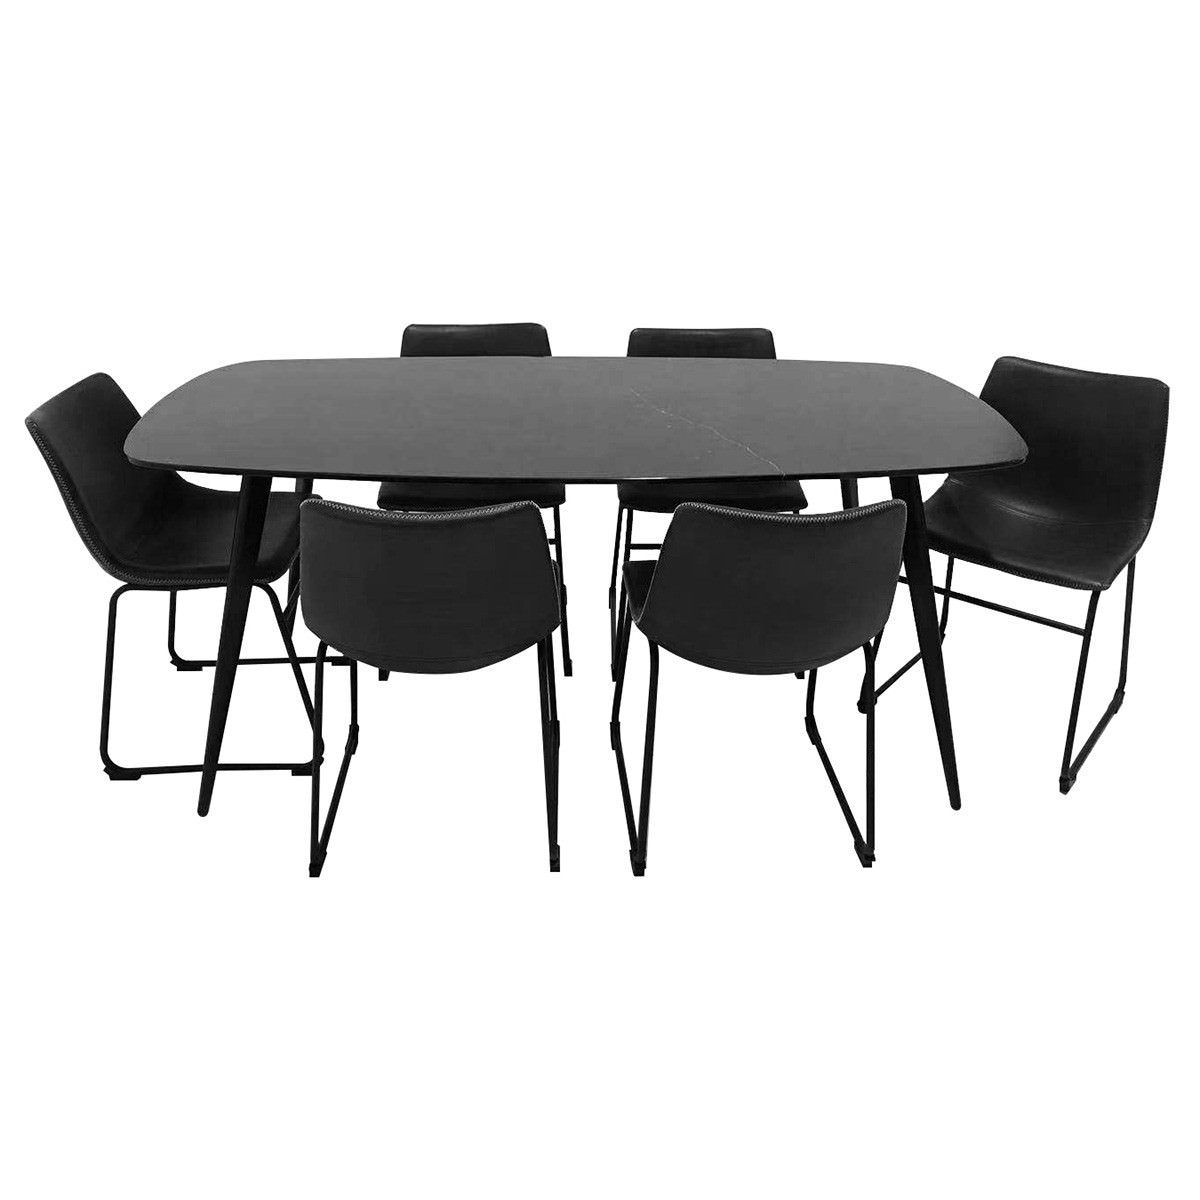 Jupiter 7 Piece Marble Topped Metal Dining Table Set, 180cm, with Perry Chair